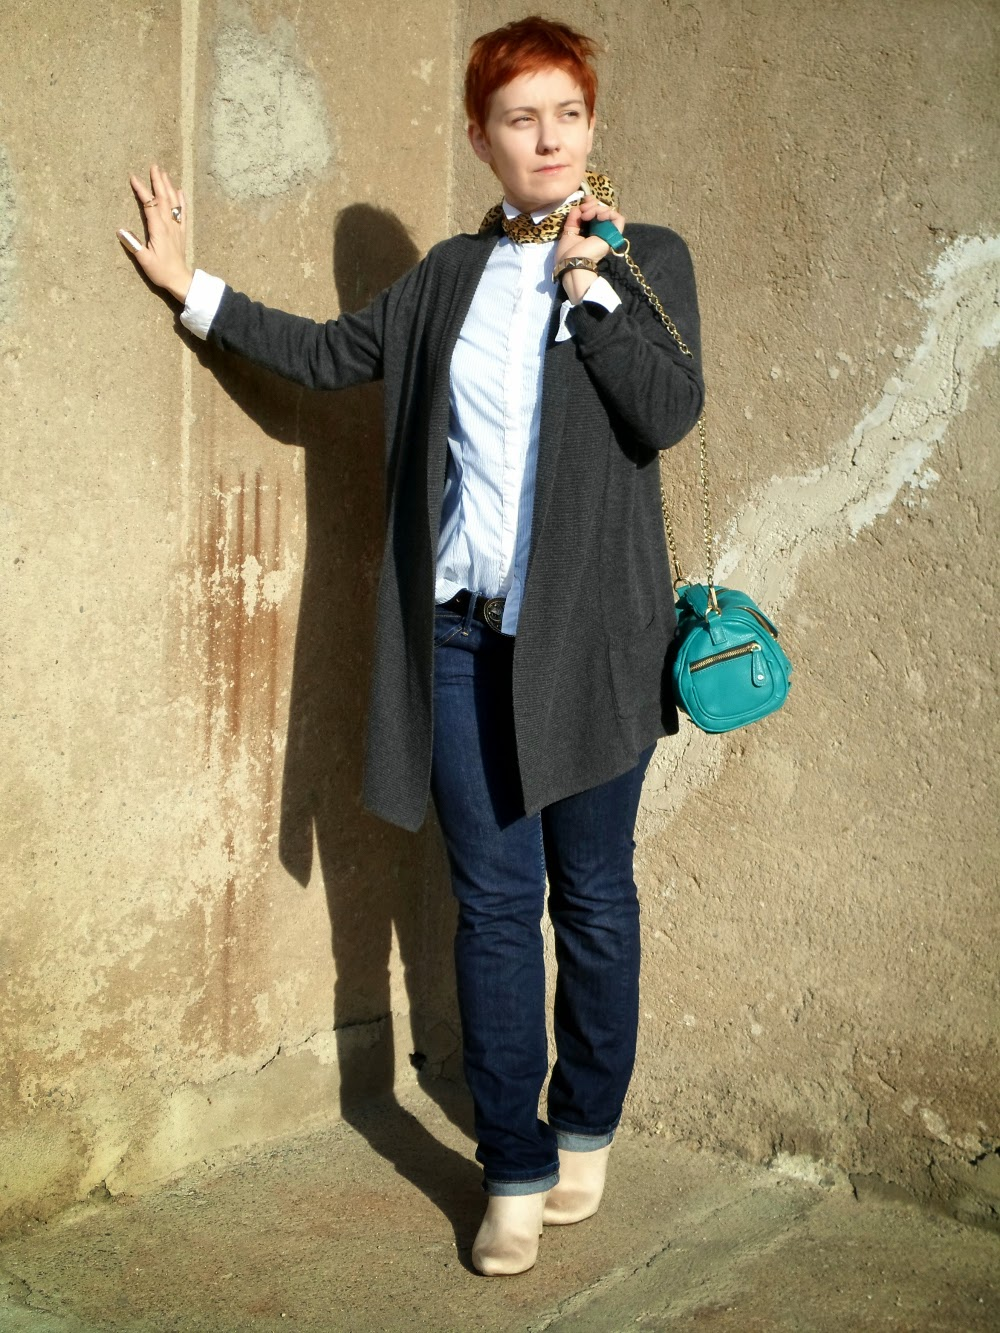 A (striped) button down shirt with a kerchief / small silk foulard pretending to be a reverse tie. A grey cardigan, dark wash denim, ankle booties, an emerald bag | Ain't She Dapper - Funky Jungle, fashion and personal style blog